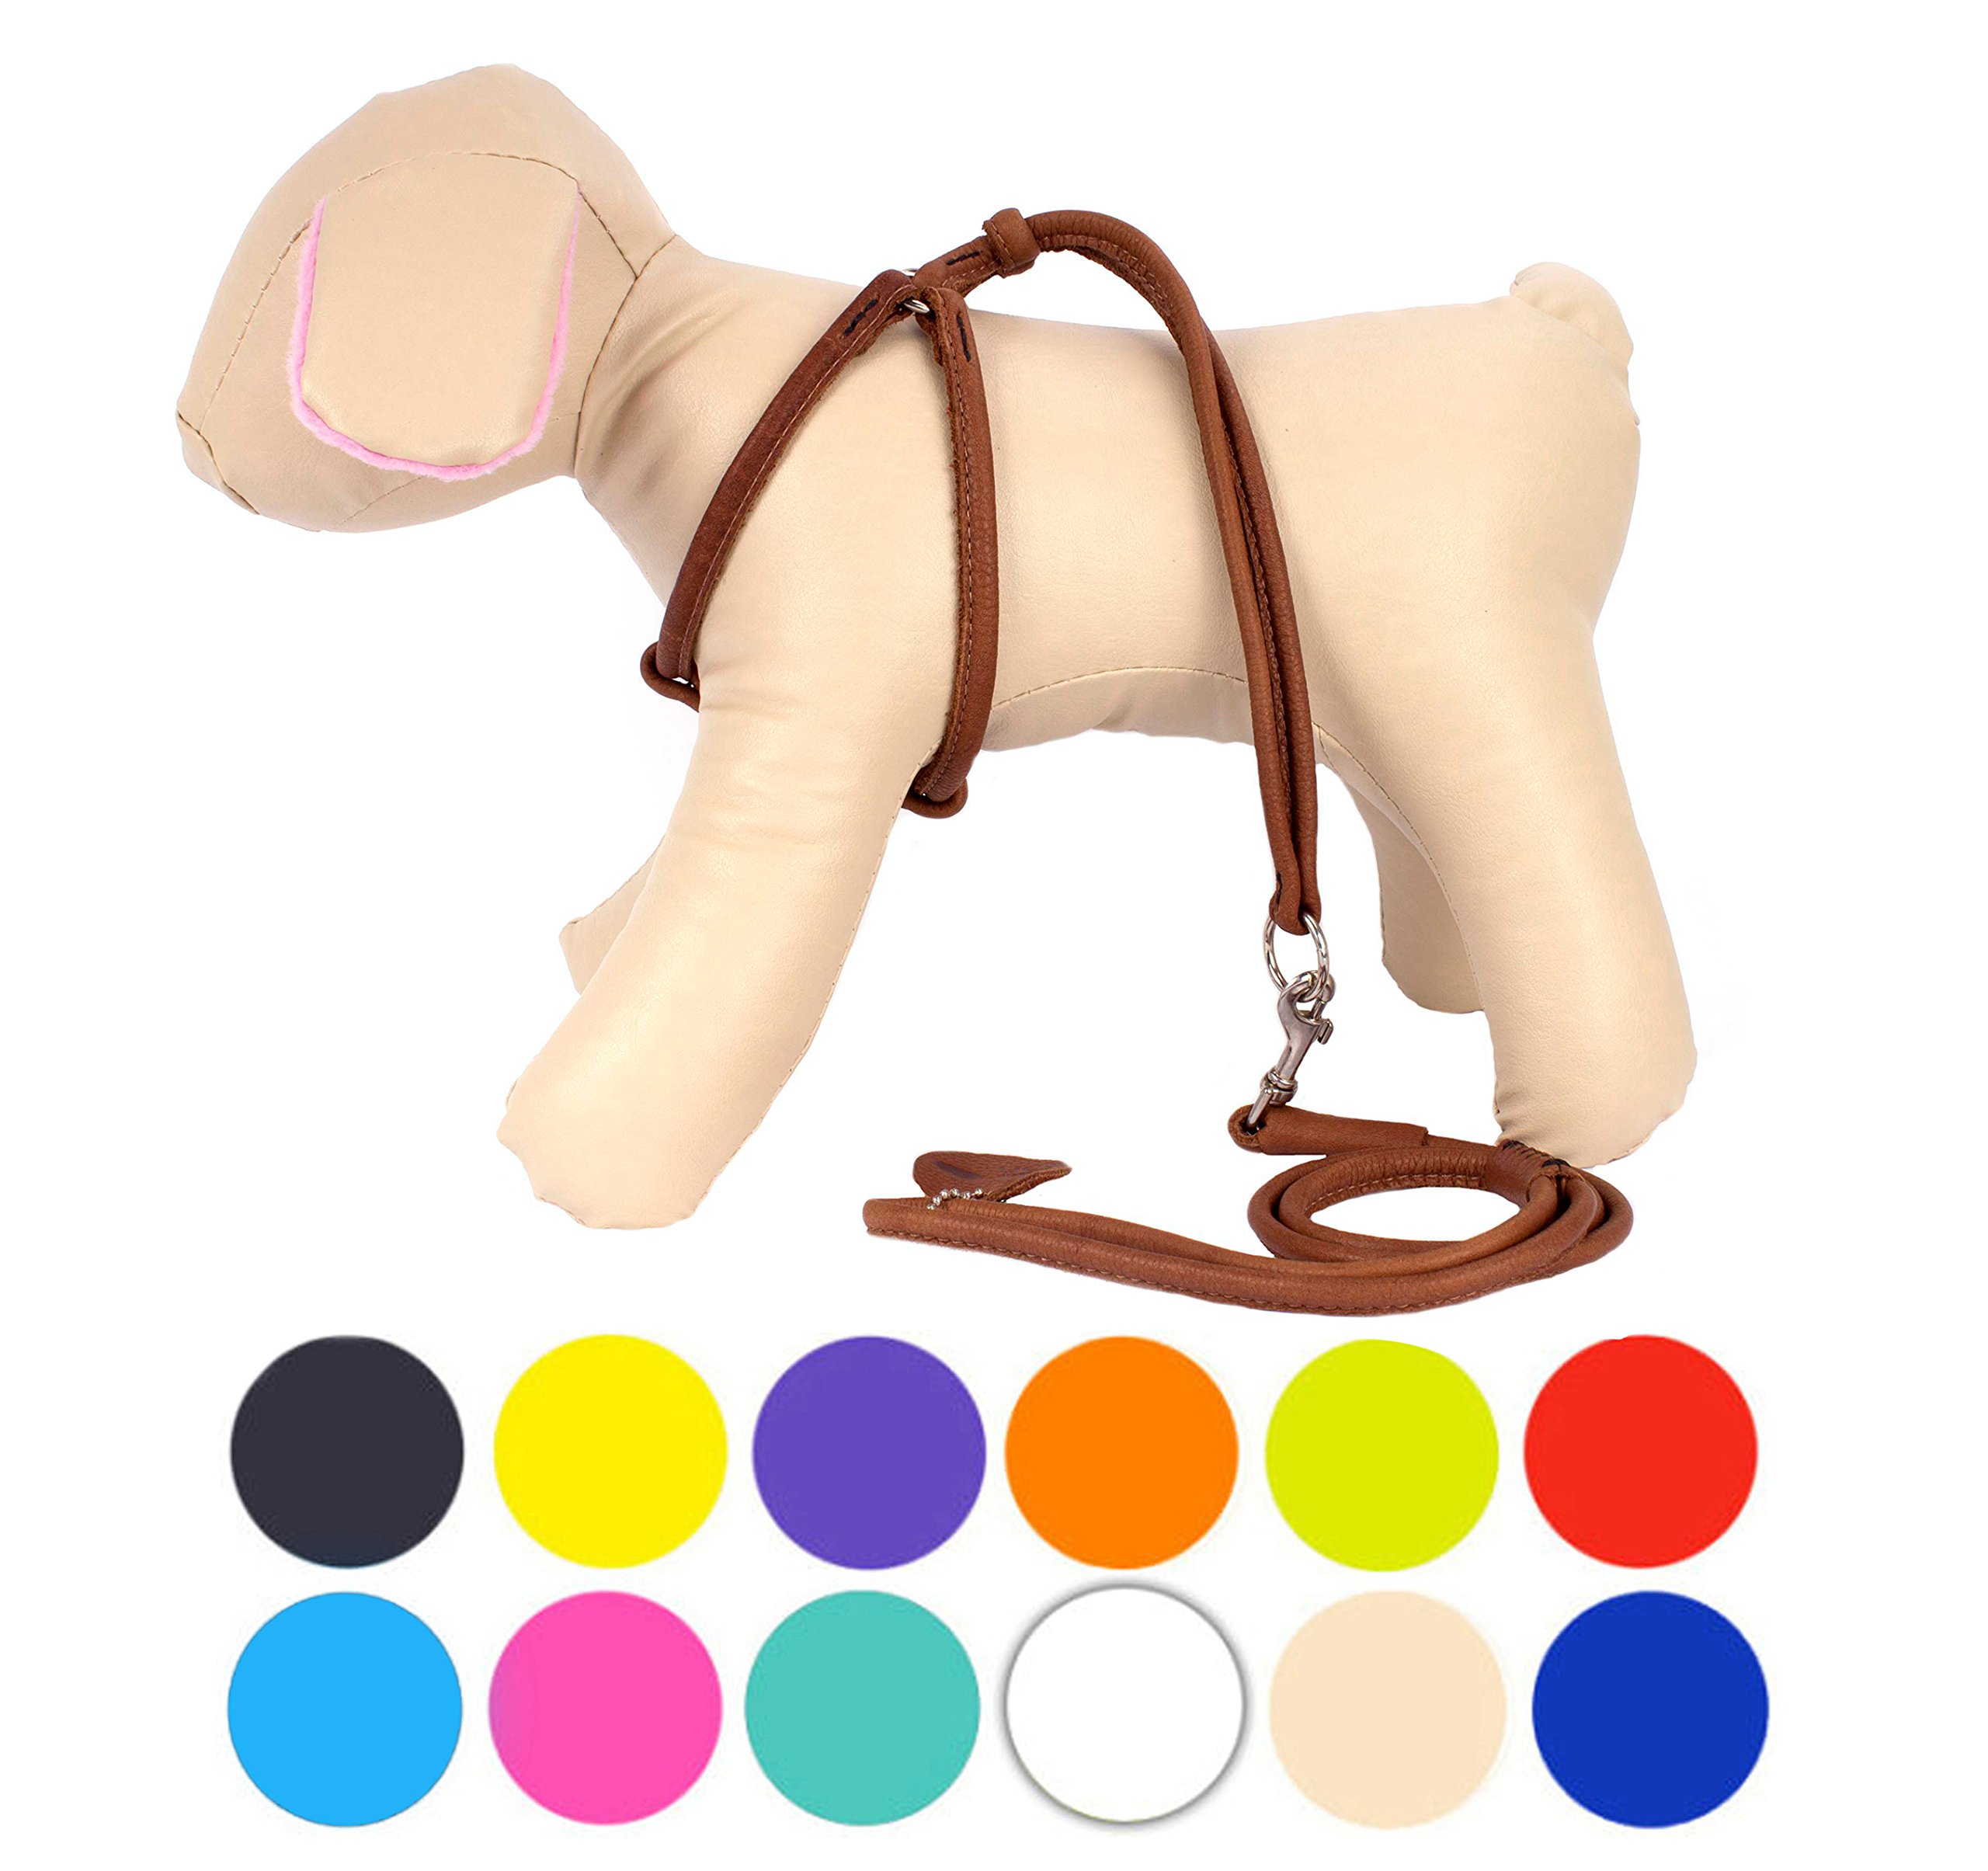 CollarDirect Rolled Leather Dog Harness Small Puppy Step-in Leash Set Walking Pink Red White Blue Green Black Purple Beige Brown Yellow (Brown, S)